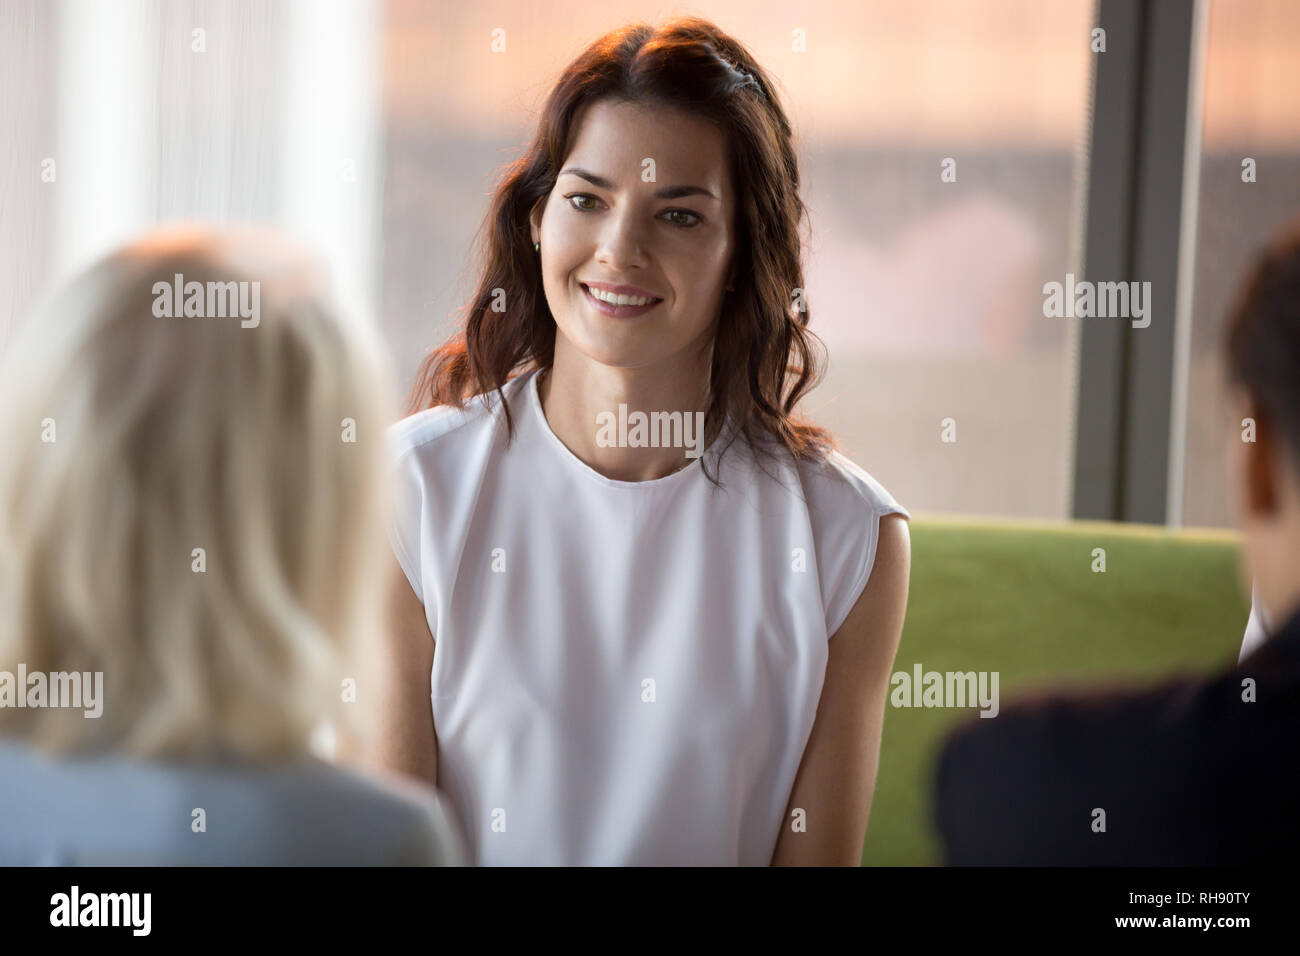 Confident happy applicant smiling looking at hr during job interview Stock Photo